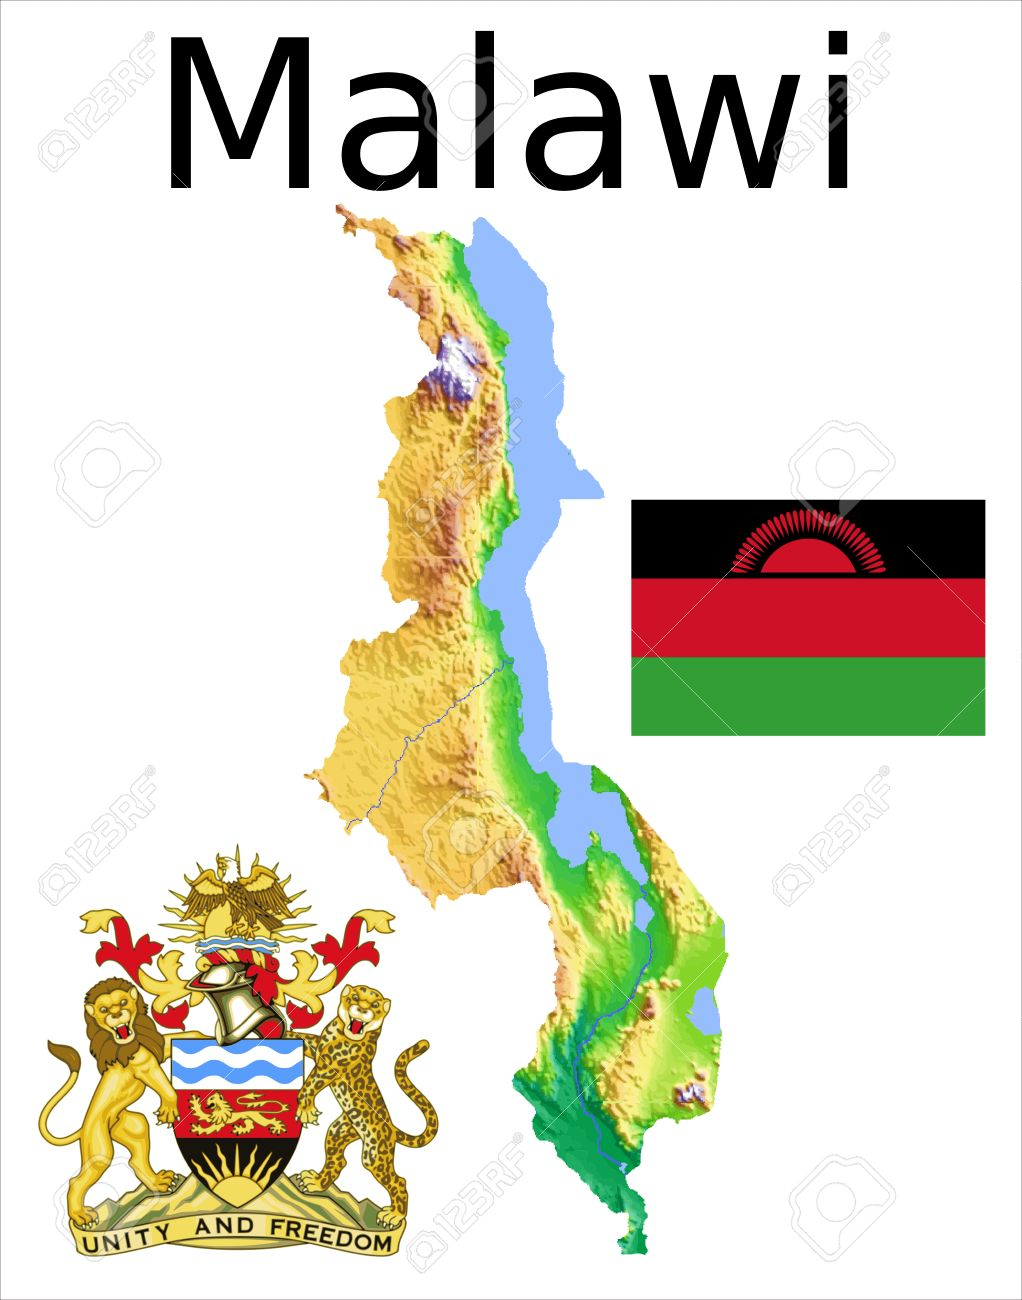 Malawi map flag coat on mozambique map, cameroon map, mauritius map, libya map, senegal map, kenya map, democratic republic congo map, nigeria map, kiribati map, ethiopia map, jamaica map, algeria map, liberia map, mali map, tanzania map, madagascar map, gambia map, morocco map, niger map, tunisia map, rwanda map, macedonia map, sudan map, togo map, egypt map, ghana map, lesotho map, swaziland on map, zambia map, uganda map, zimbabwe map, africa map, namibia map, angola map, sierra leone map,